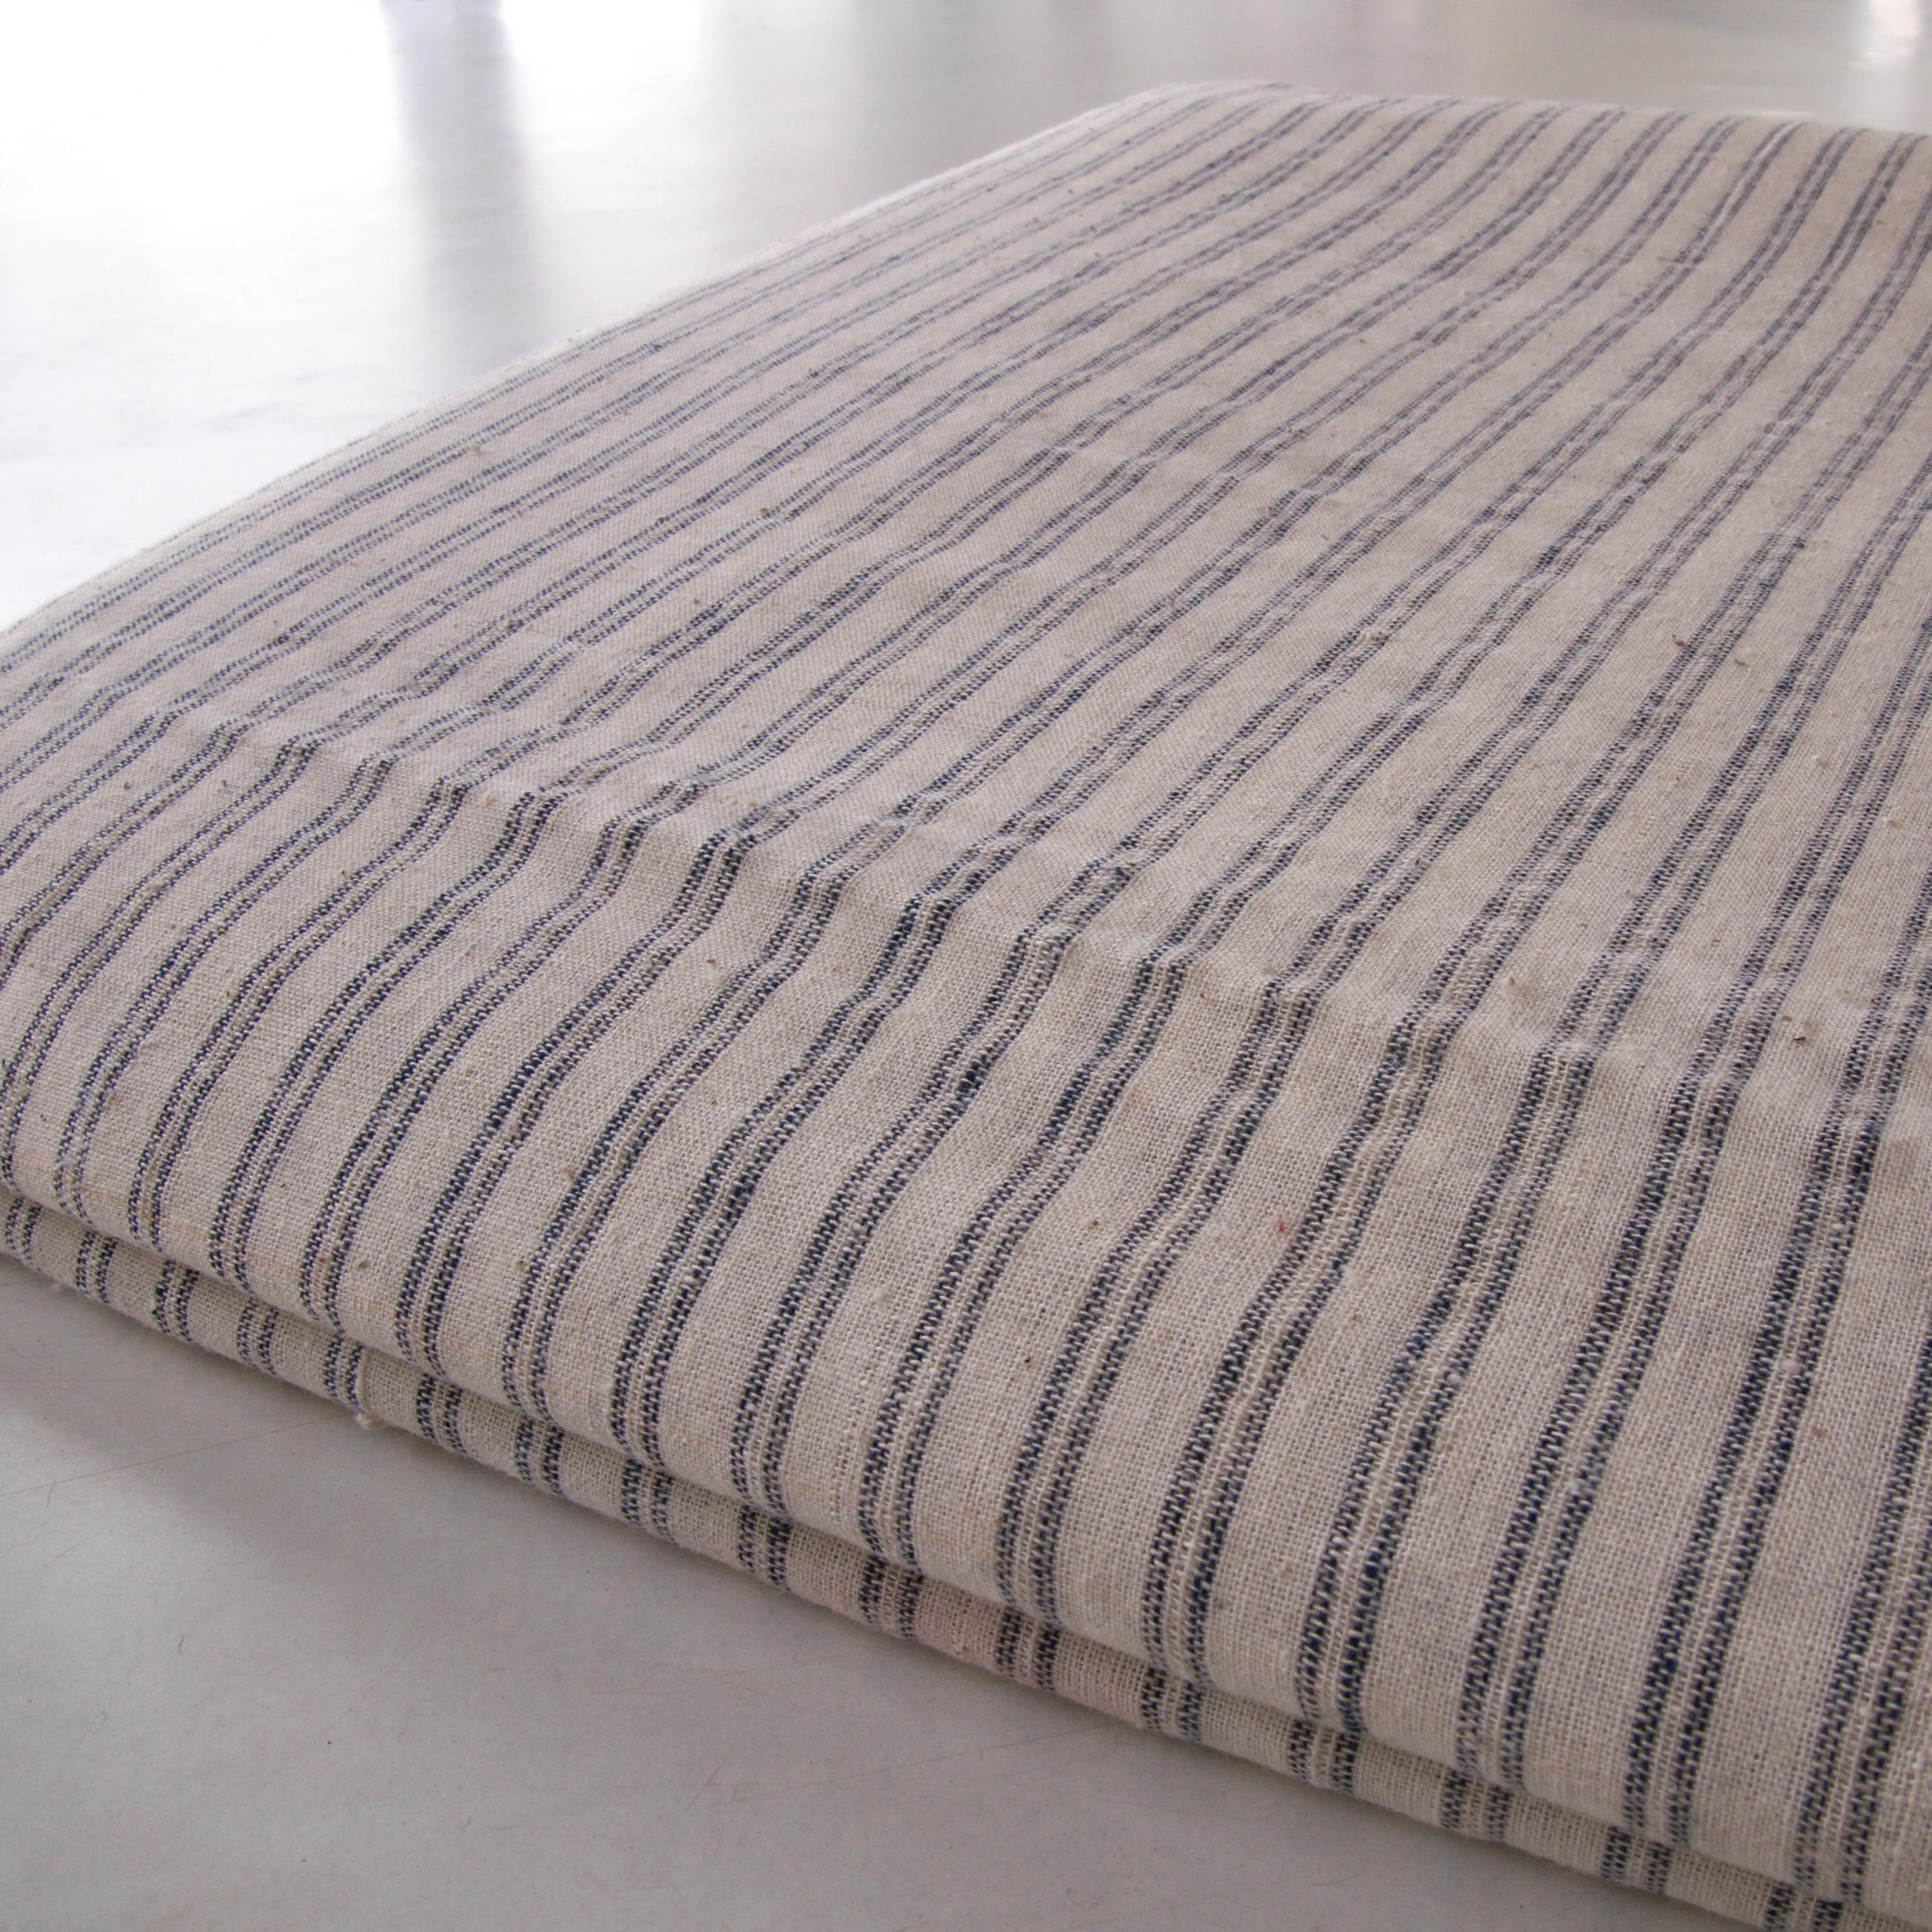 100% Handloom Woven Cotton - Pinstripes - White Warp & Weft, White and Natural Indigo Warp - Bolt